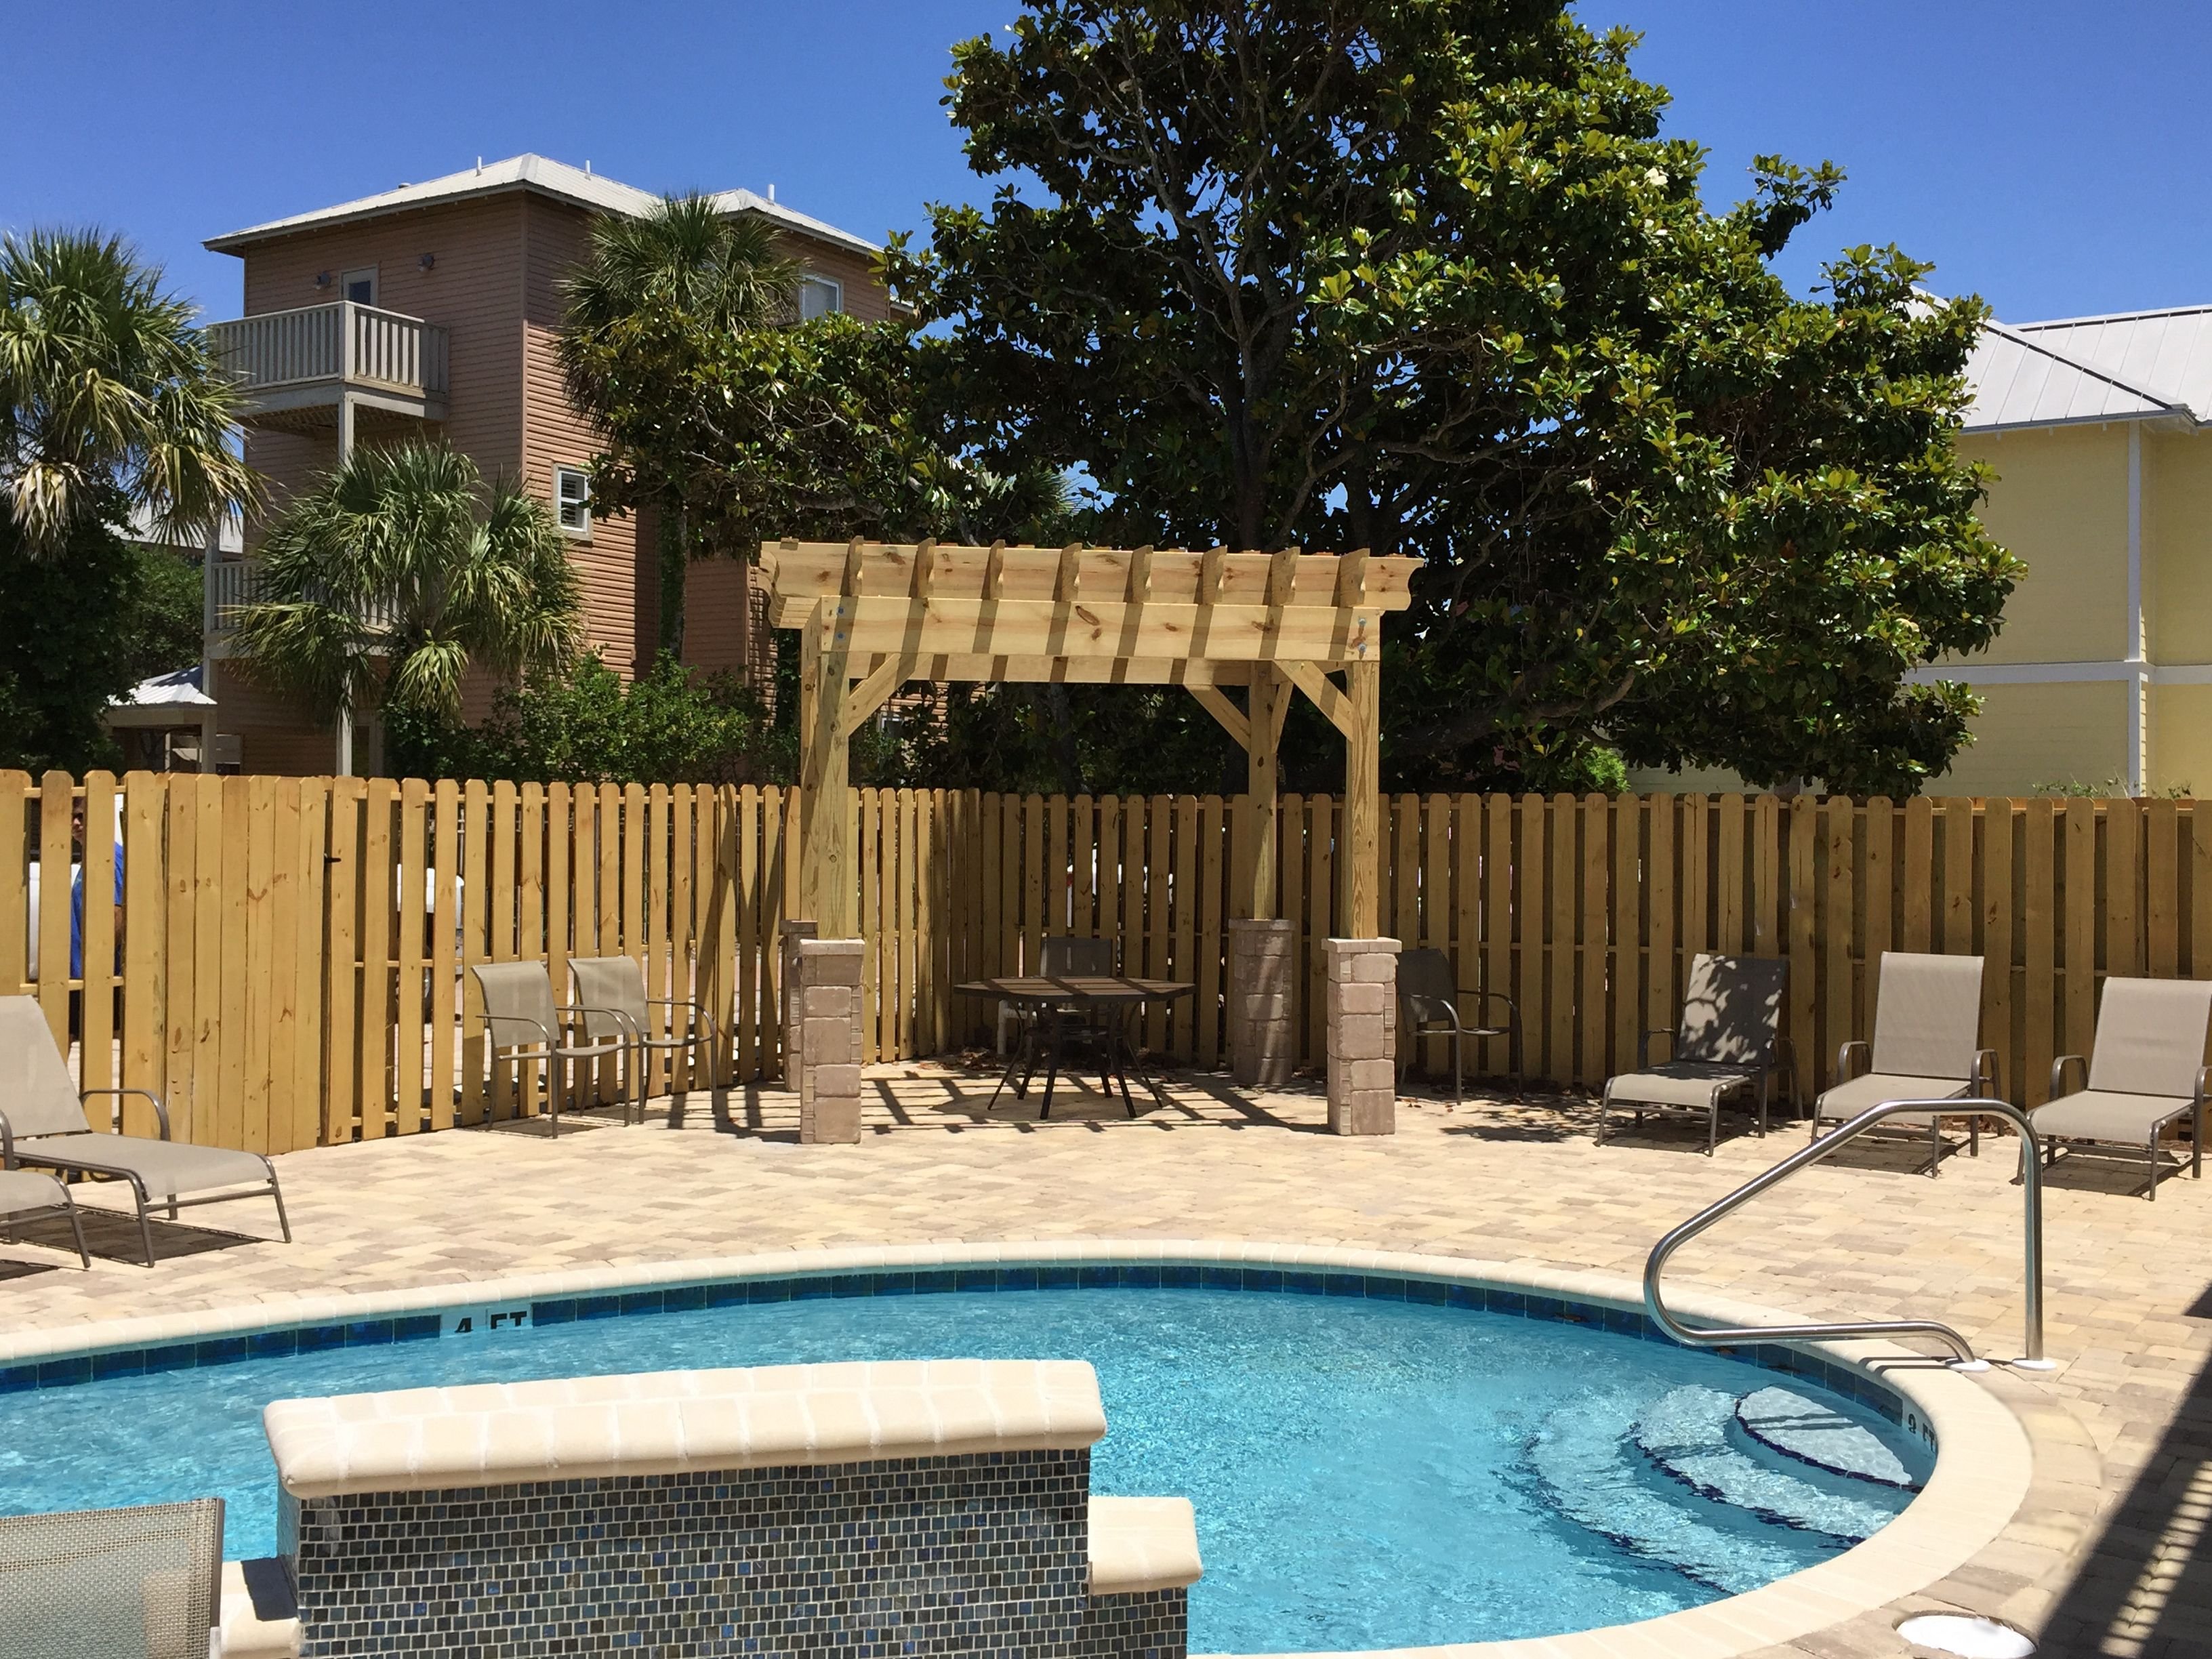 Brick Pool Deck Afterbrick Paver Pool Deck Pergola Wood Fencingdestin Fl